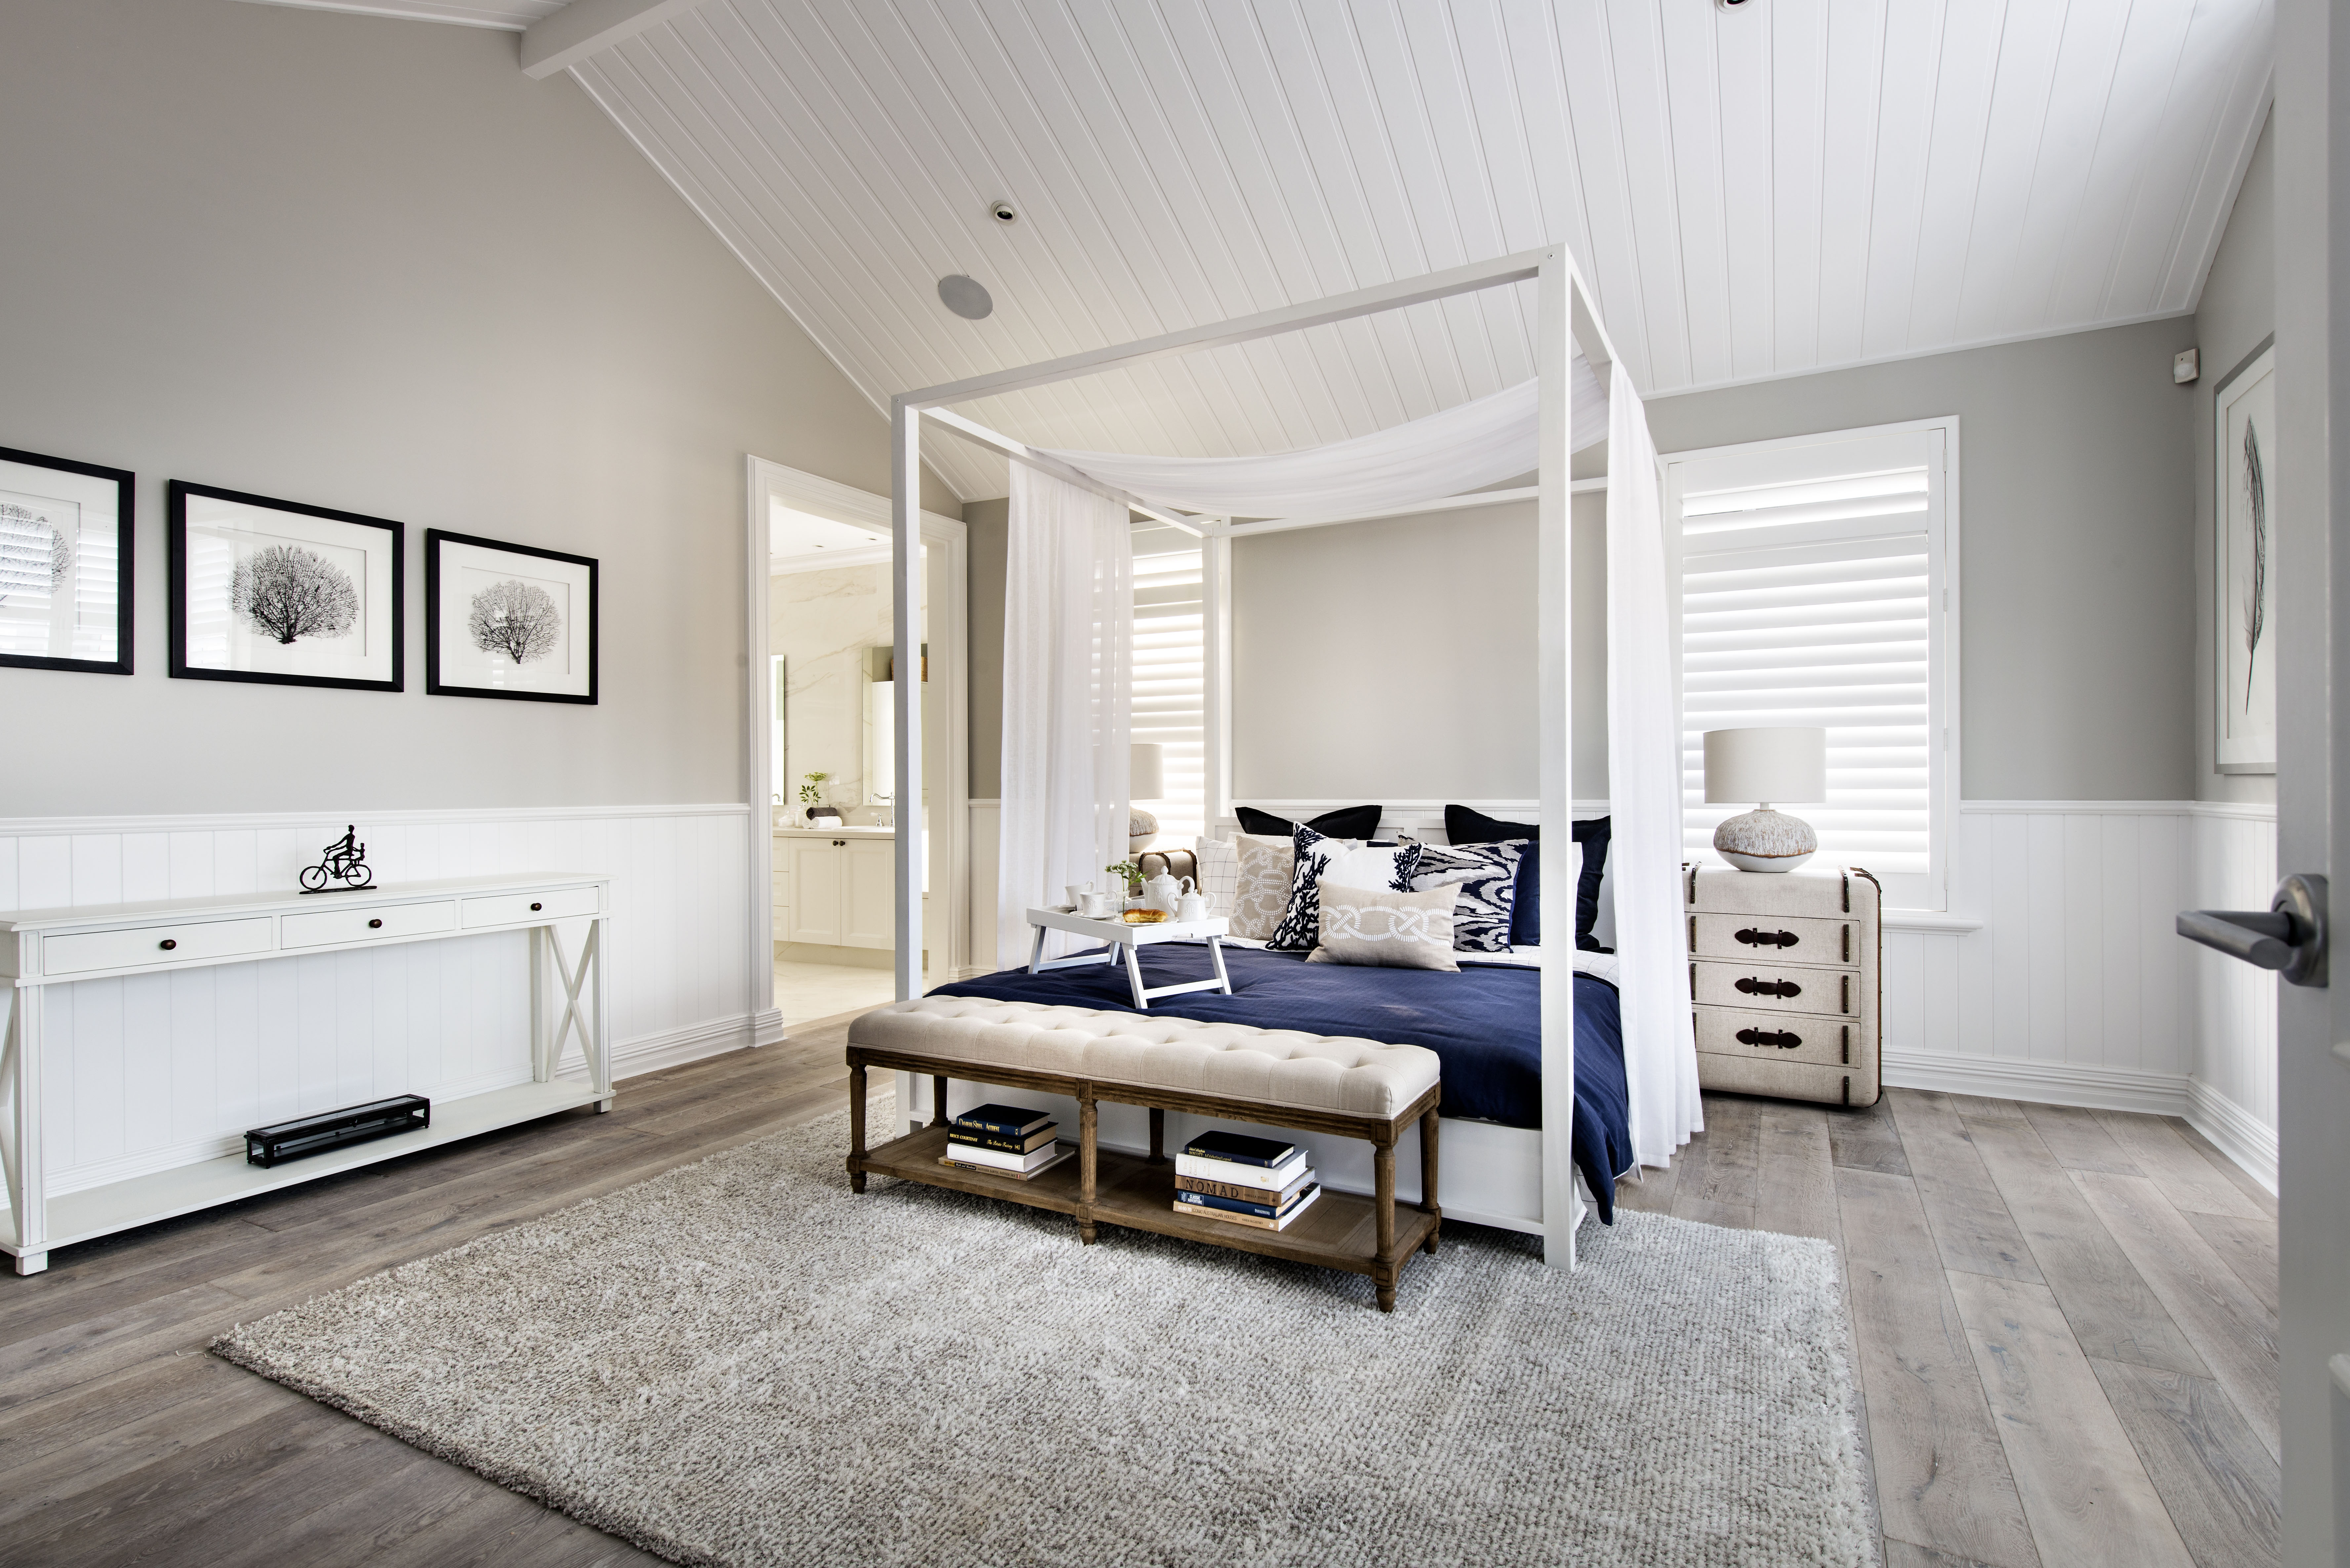 Taking a right off the staircase, the master bedroom suite takes up the back half of the second level. The light gray wood floors continue into this room, unifying the floor. The white walls and wainscoting make another appearance, as does the deep blue from the rug in the dining room.